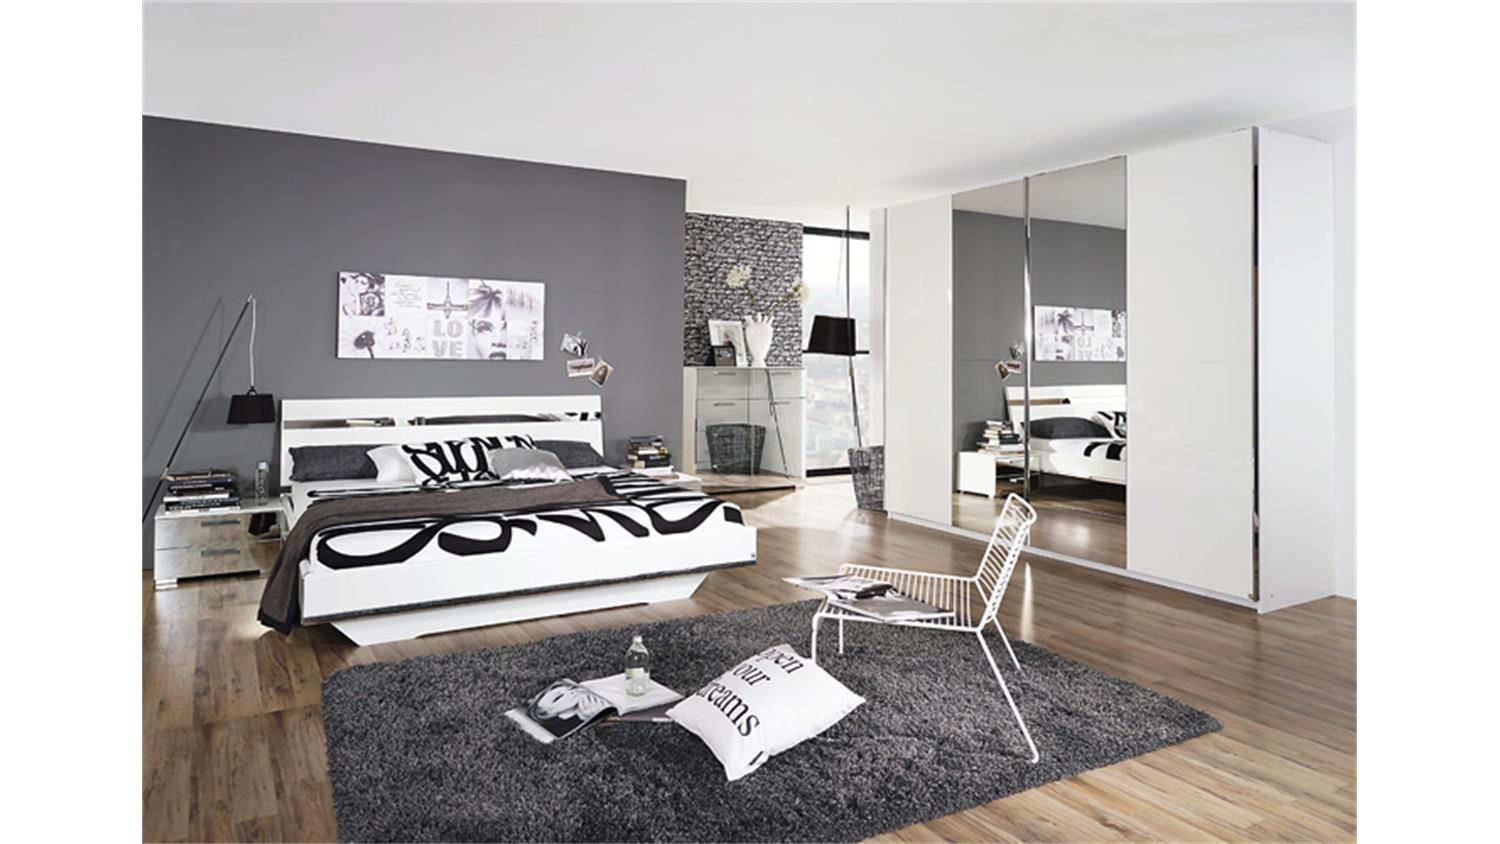 bett denia wei hochglanz chrom spiegel 140x200. Black Bedroom Furniture Sets. Home Design Ideas